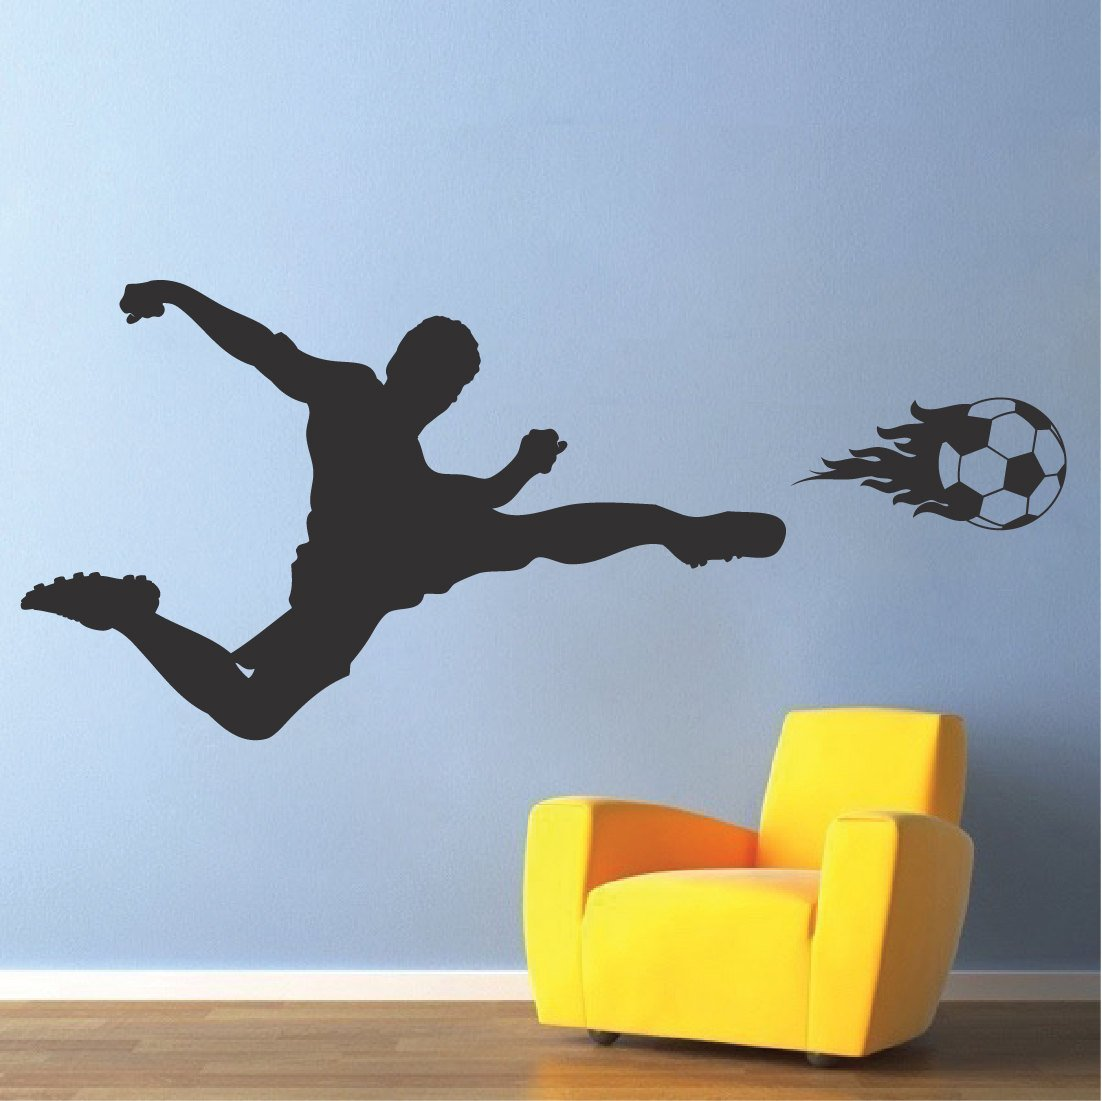 Ditooms Soccer Player Peel /& Stick Wall Decal Sports Soccer Wall Decor Sticker Kids Room